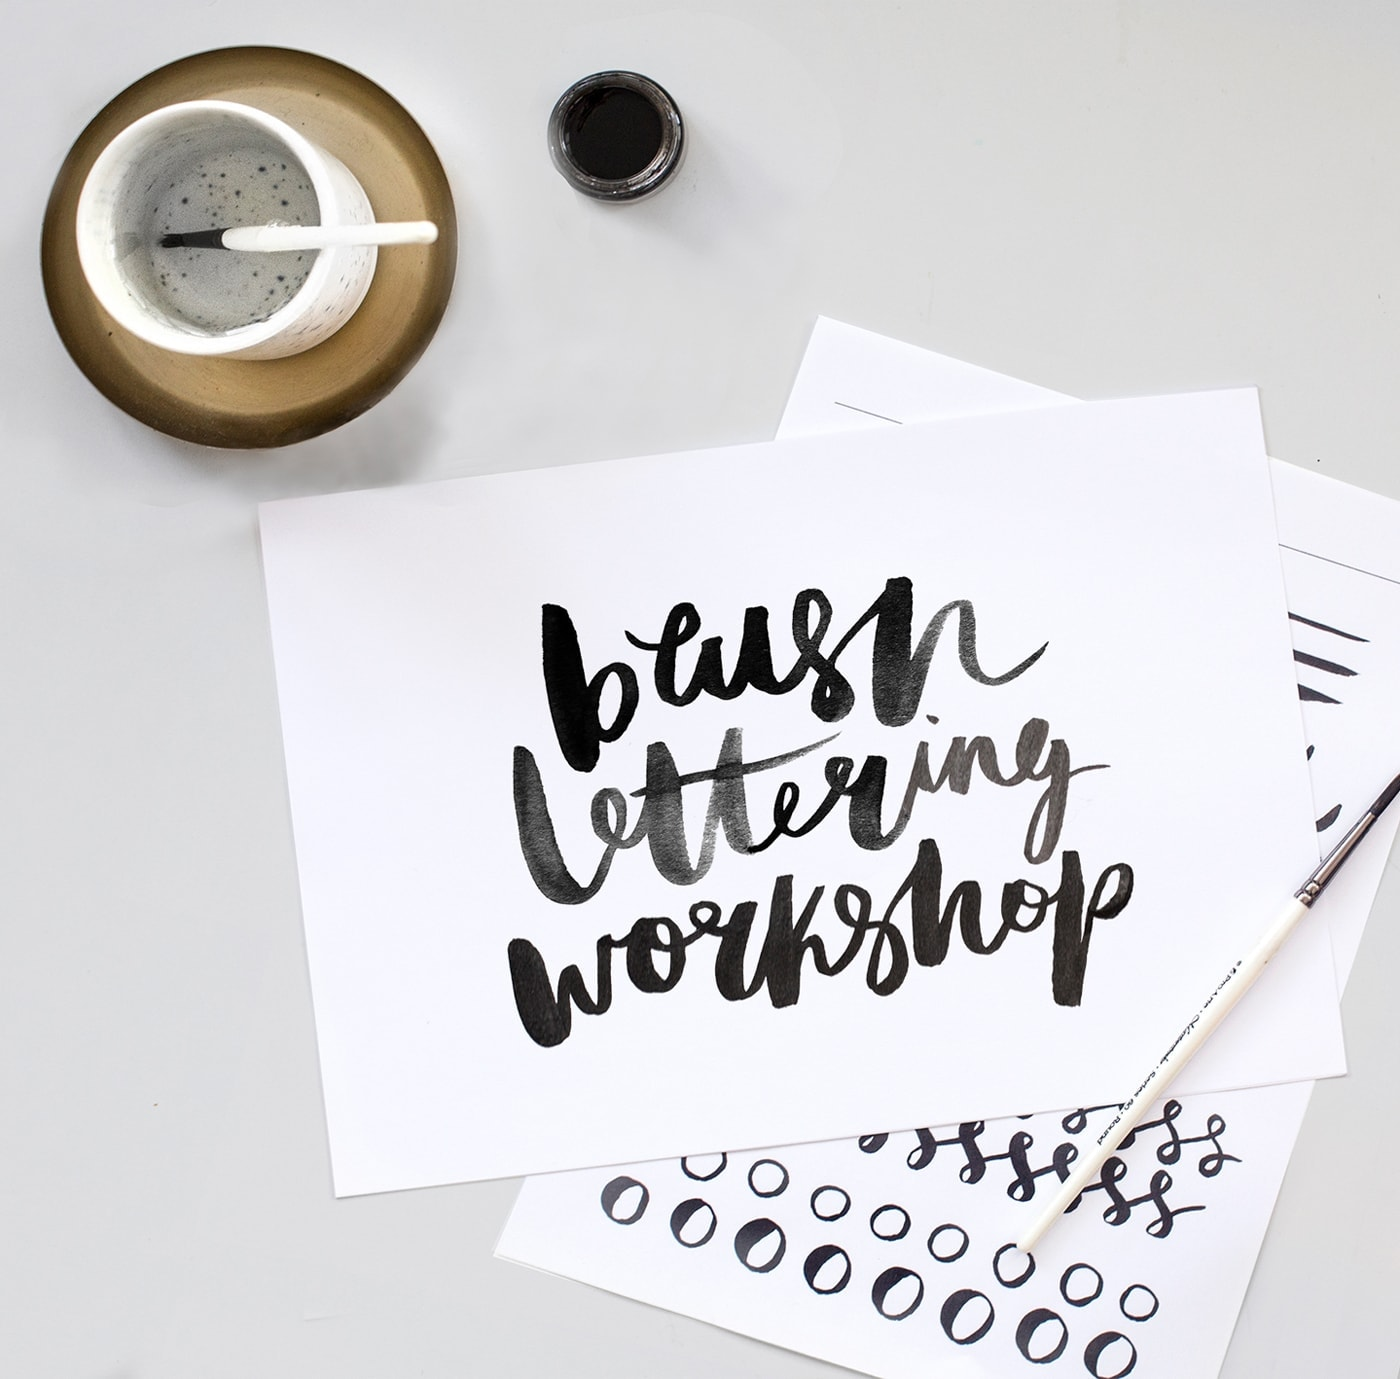 brush-lettering-workshops-with-the-lovely-drawer-london-events